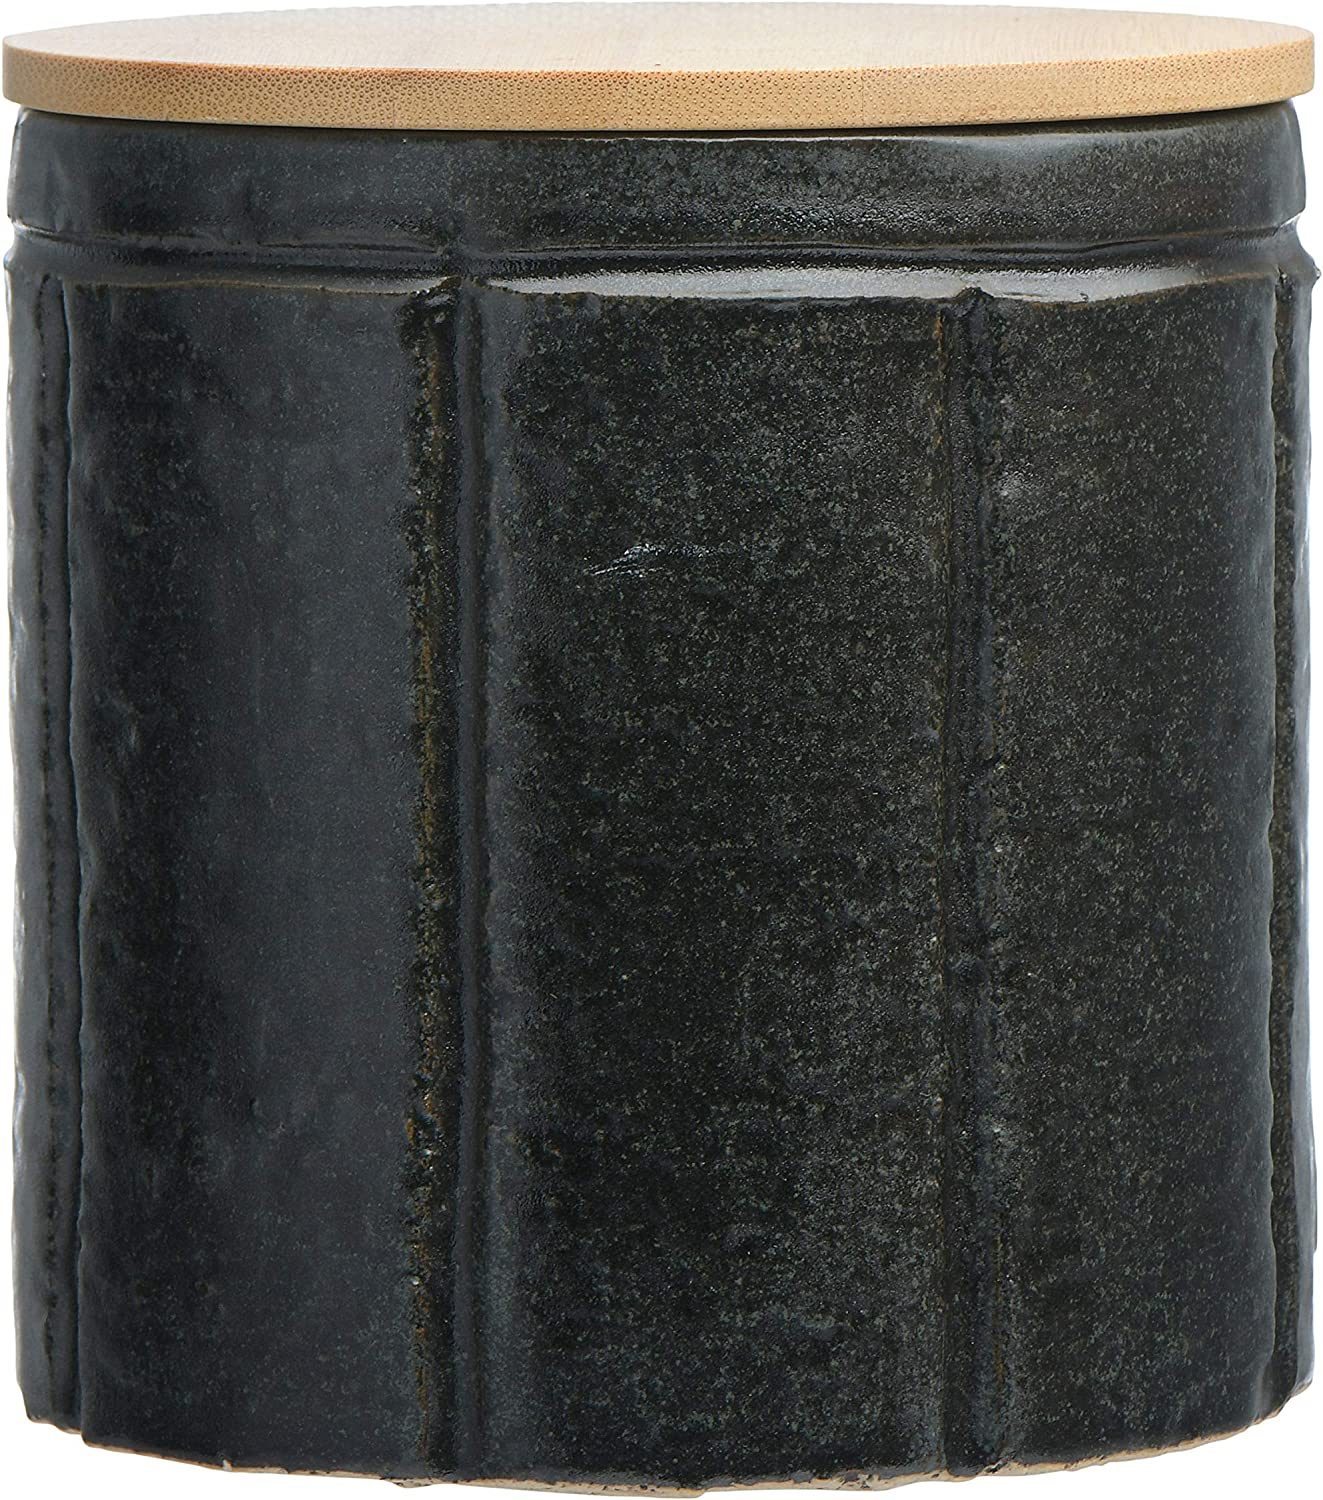 Bloomingville Black Stoneware Bamboo Lid Canister